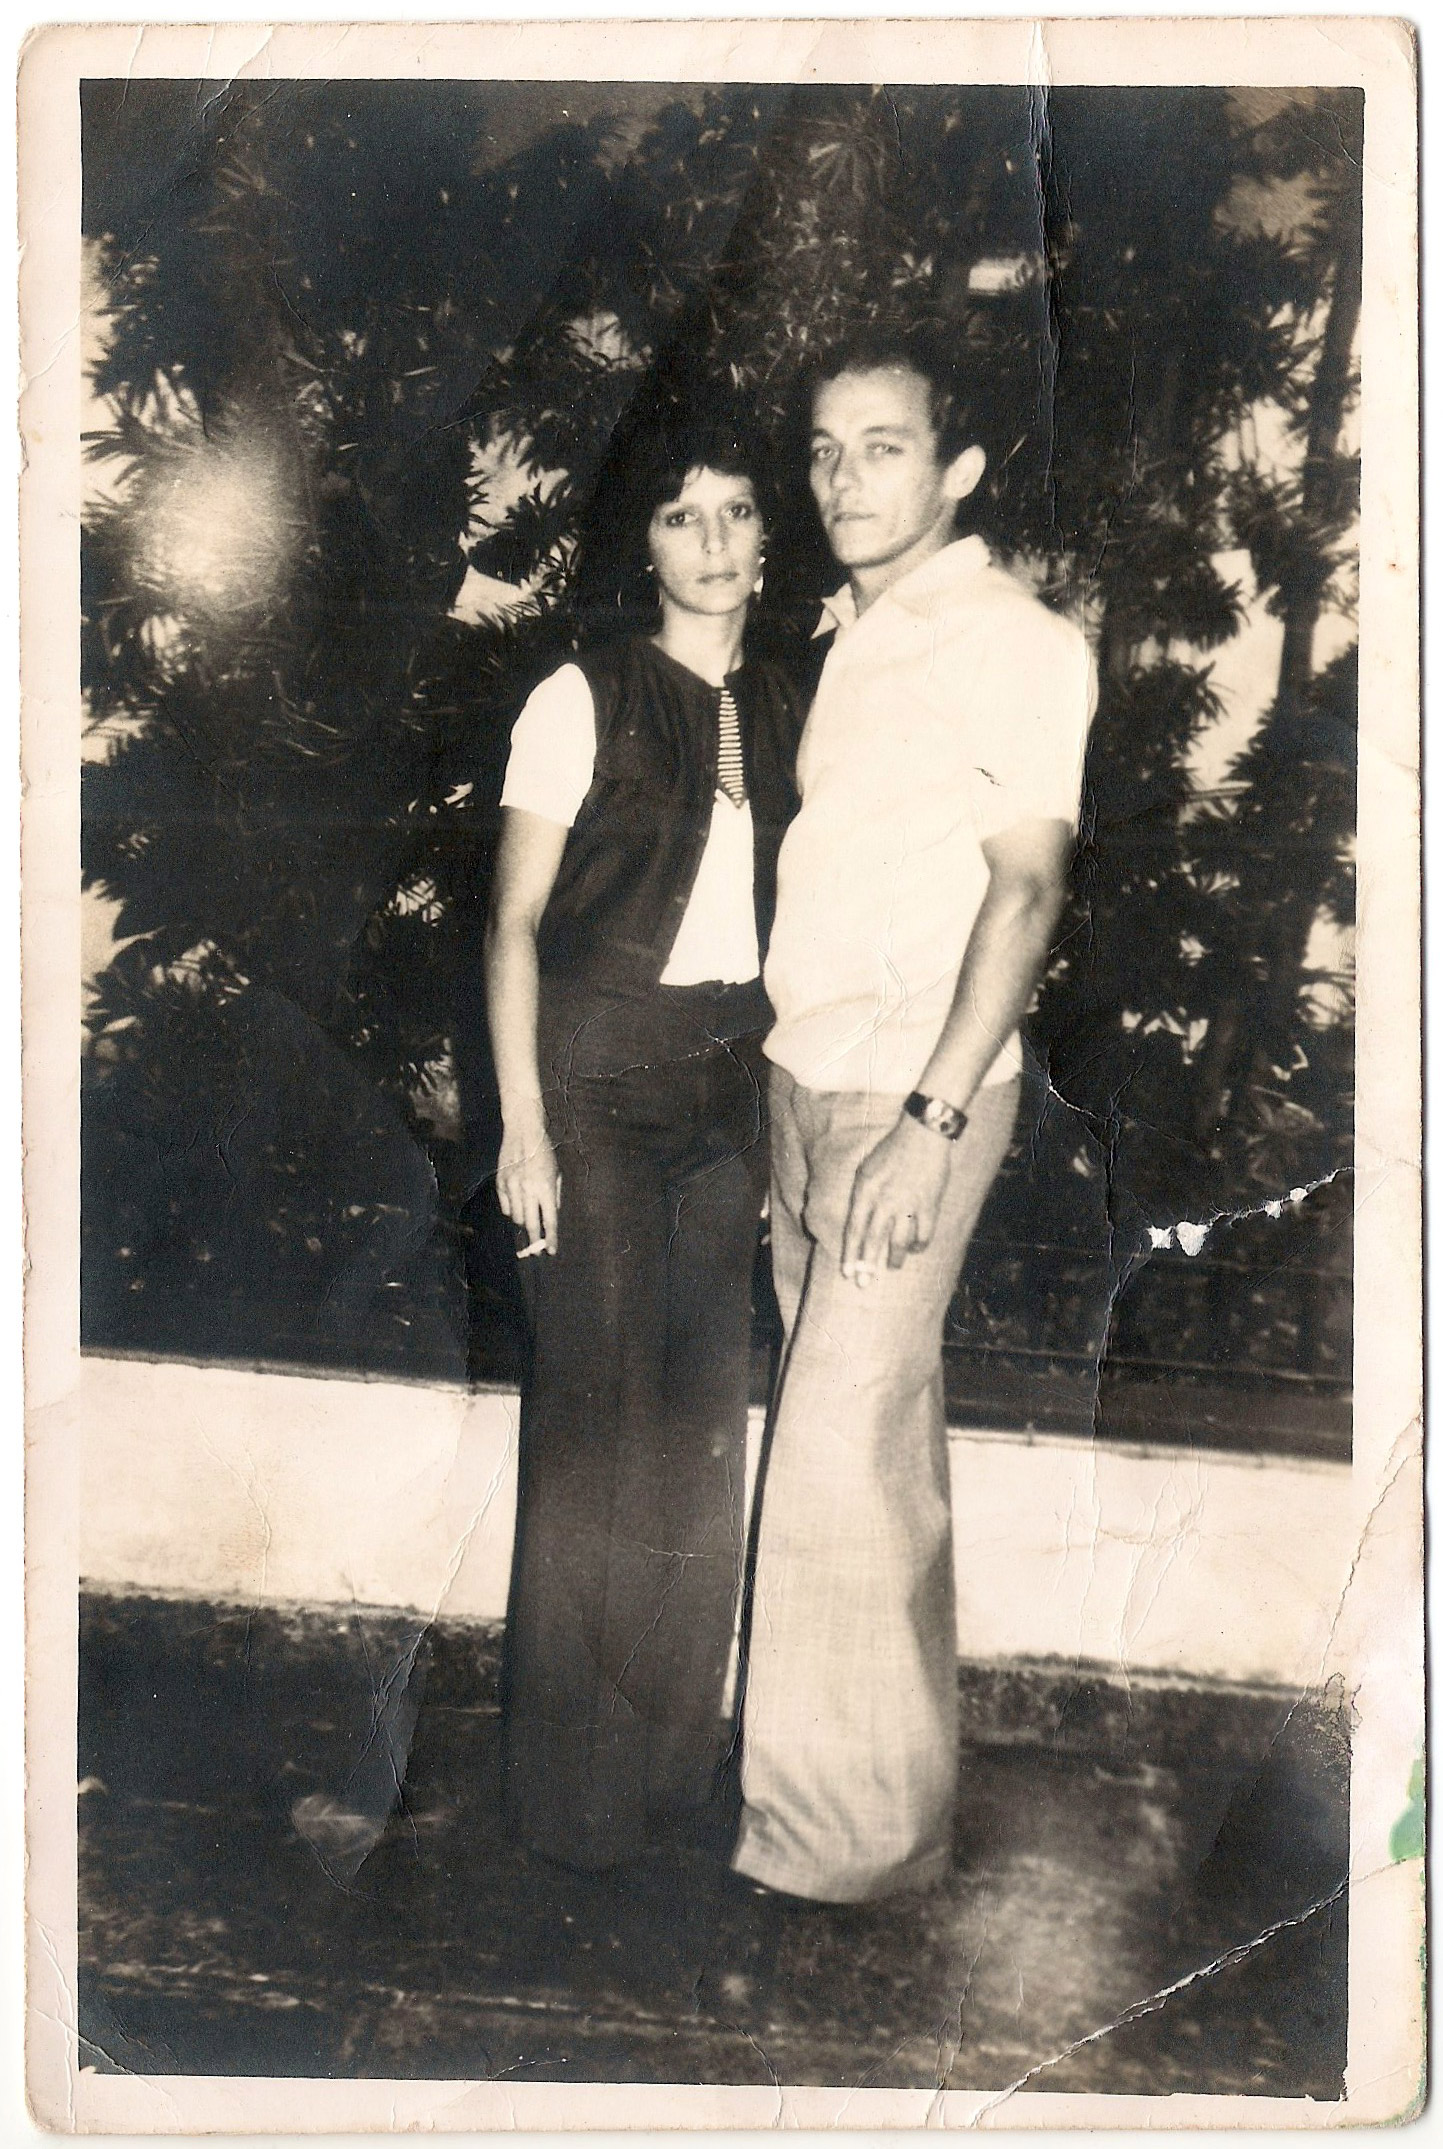 Juanito with his wife Barbara in Cuba; they had met when she was 13 years old. Barbara, concerned for her brother Hector who had left to the U.S., pled for Juanito to go and look after him. She expected they would be reunited shortly.